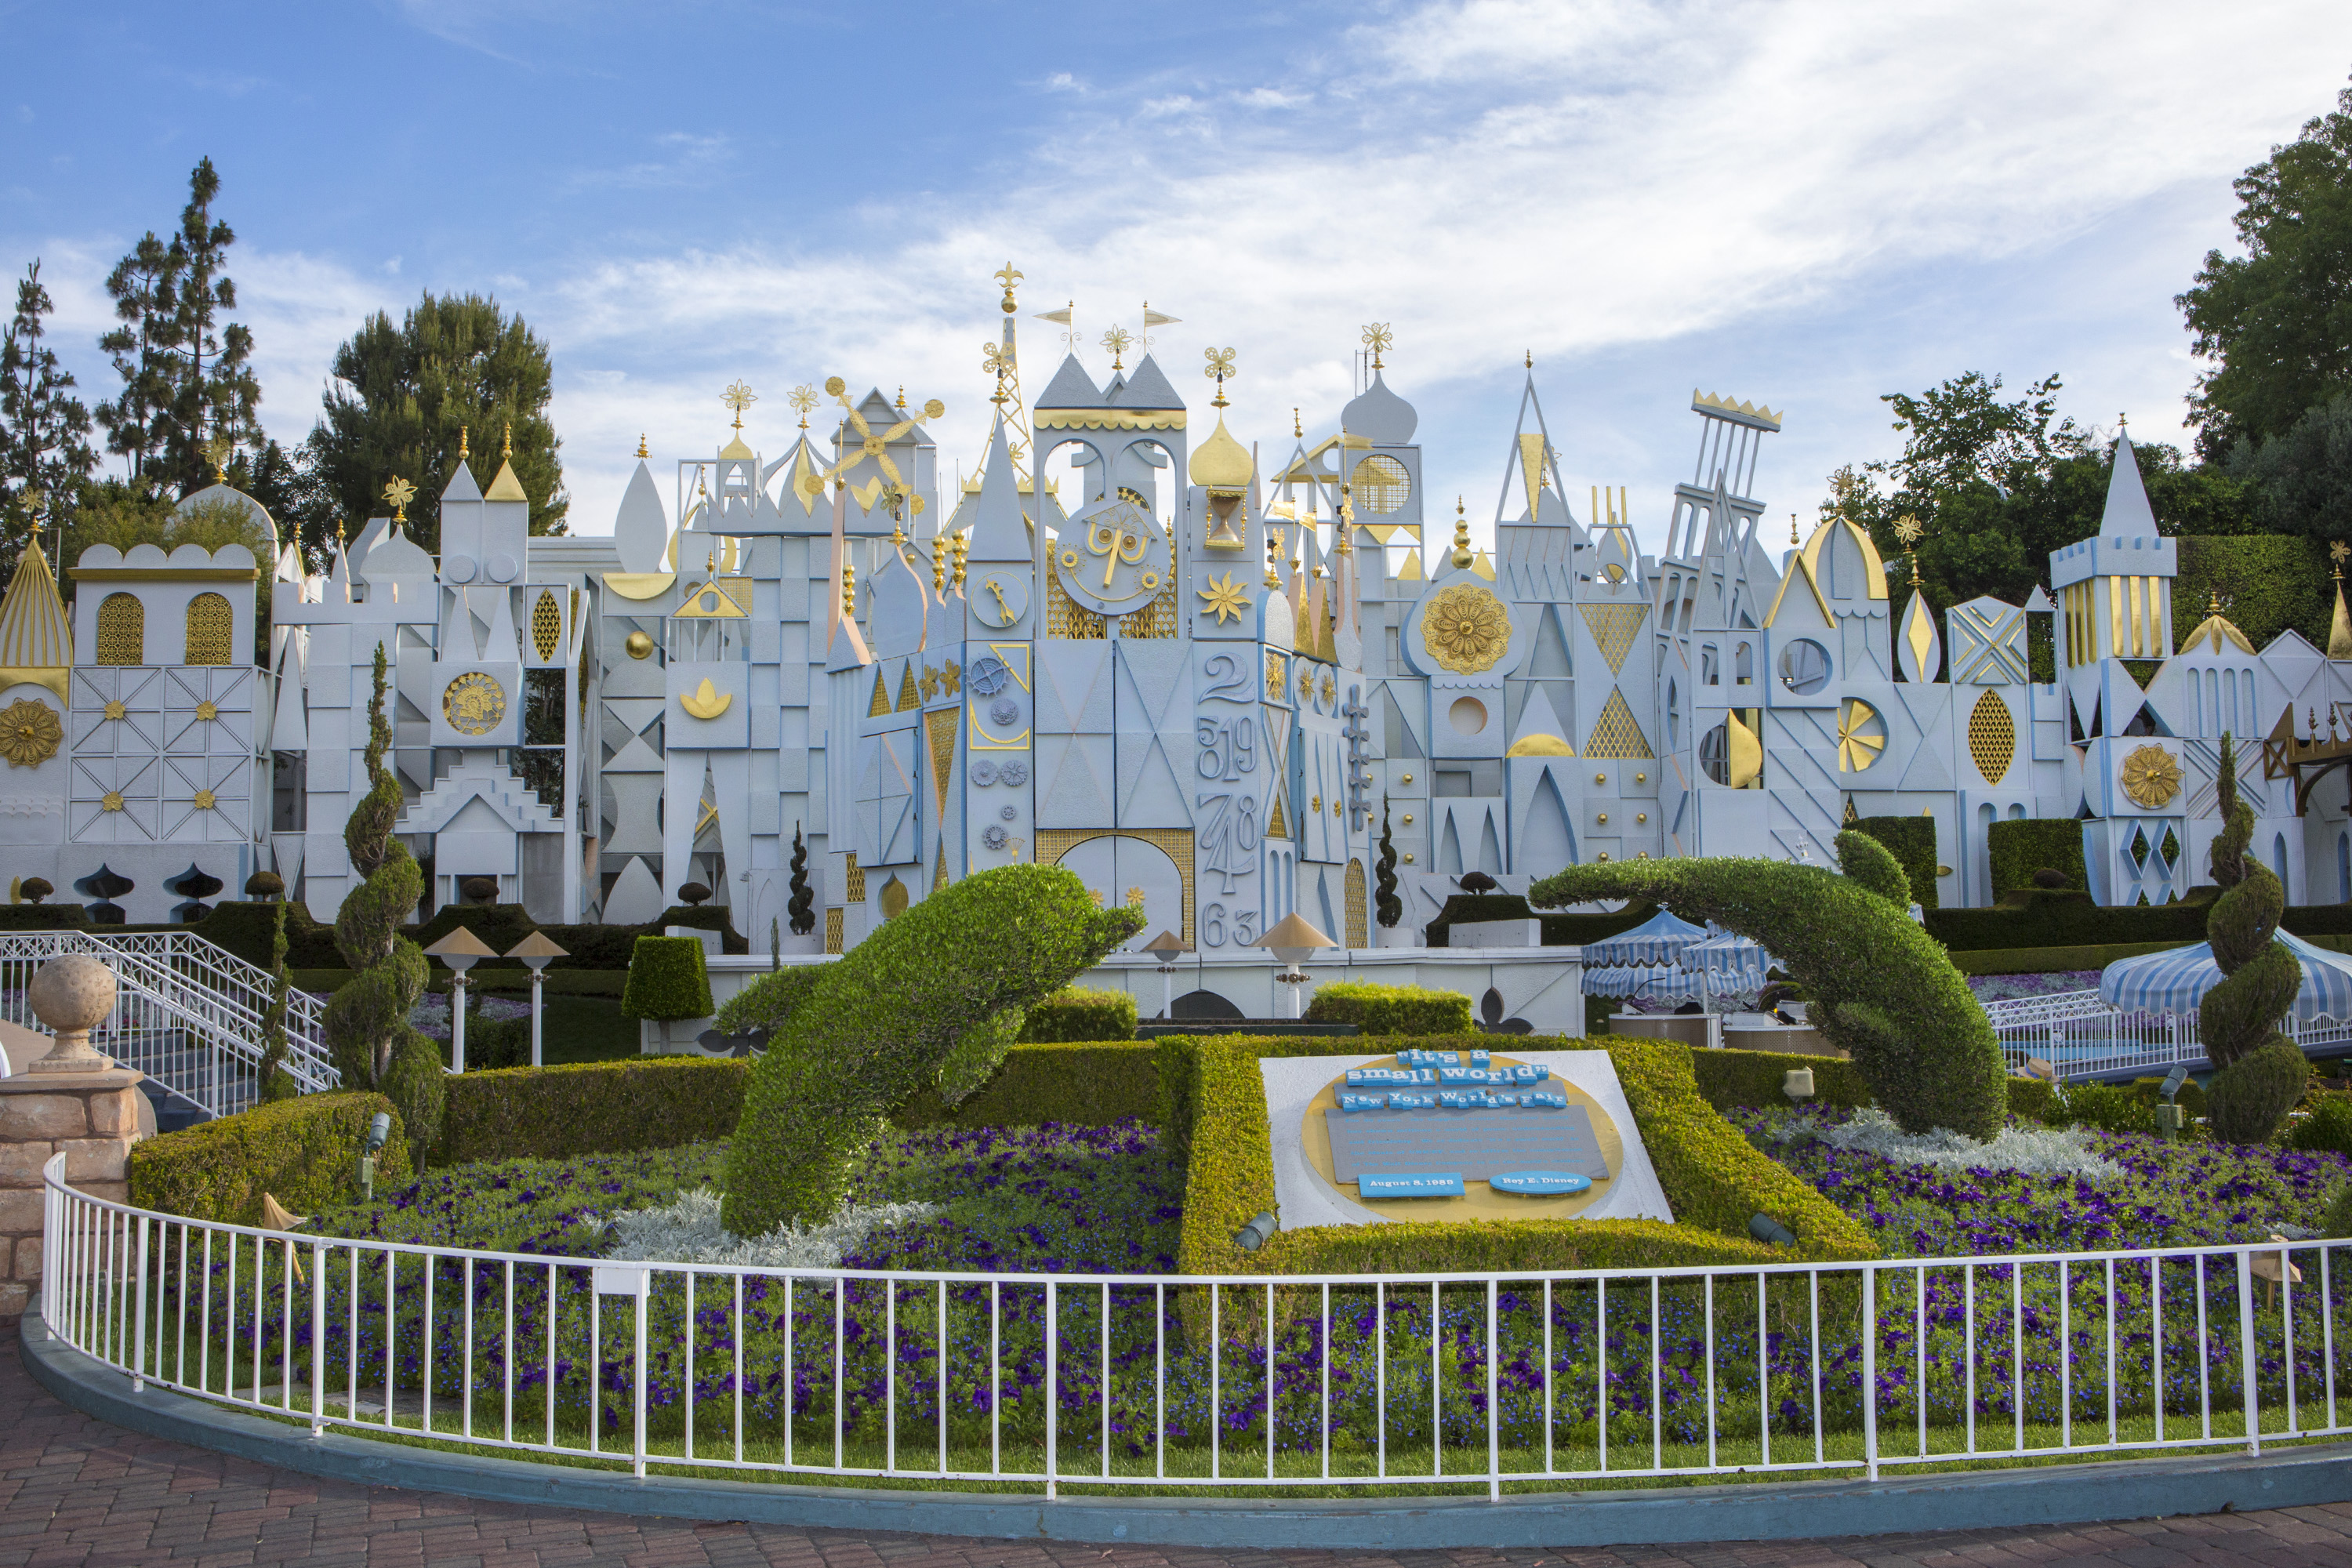 Sunday Spotlight: it's a small world